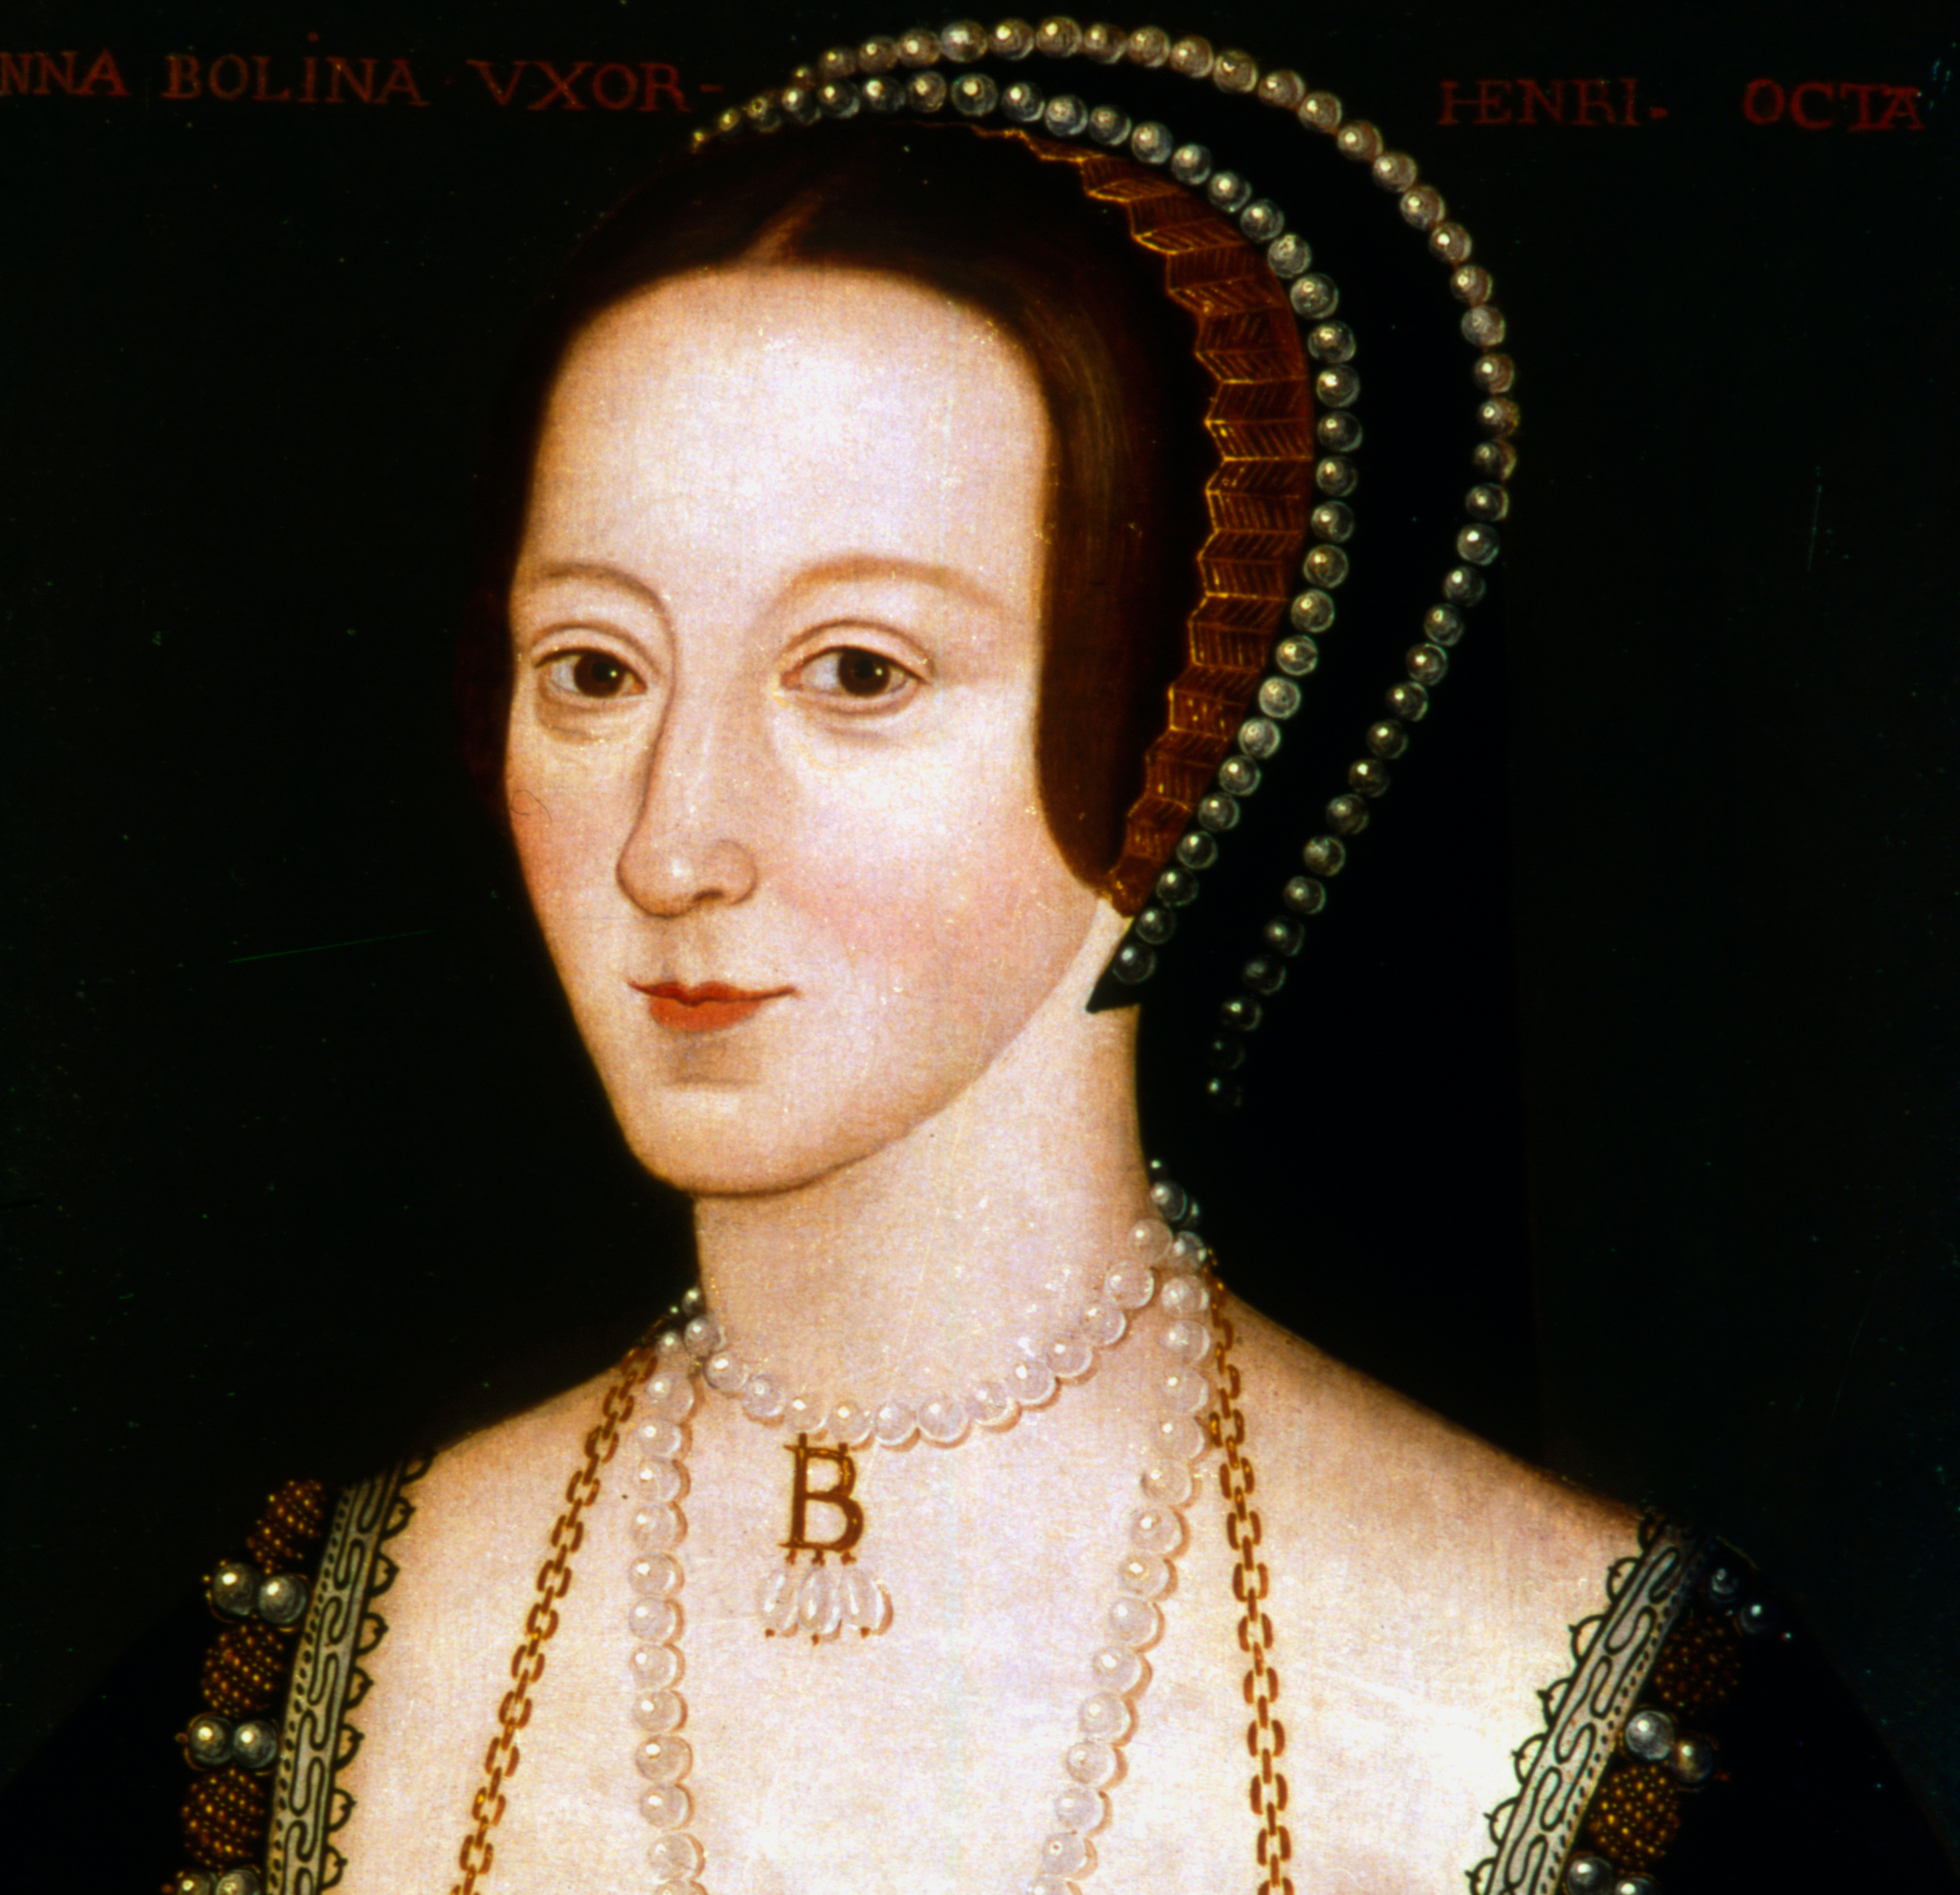 Anne Boleyn, second wife of Henry VIII, c1520-1536. Artist: Anon.